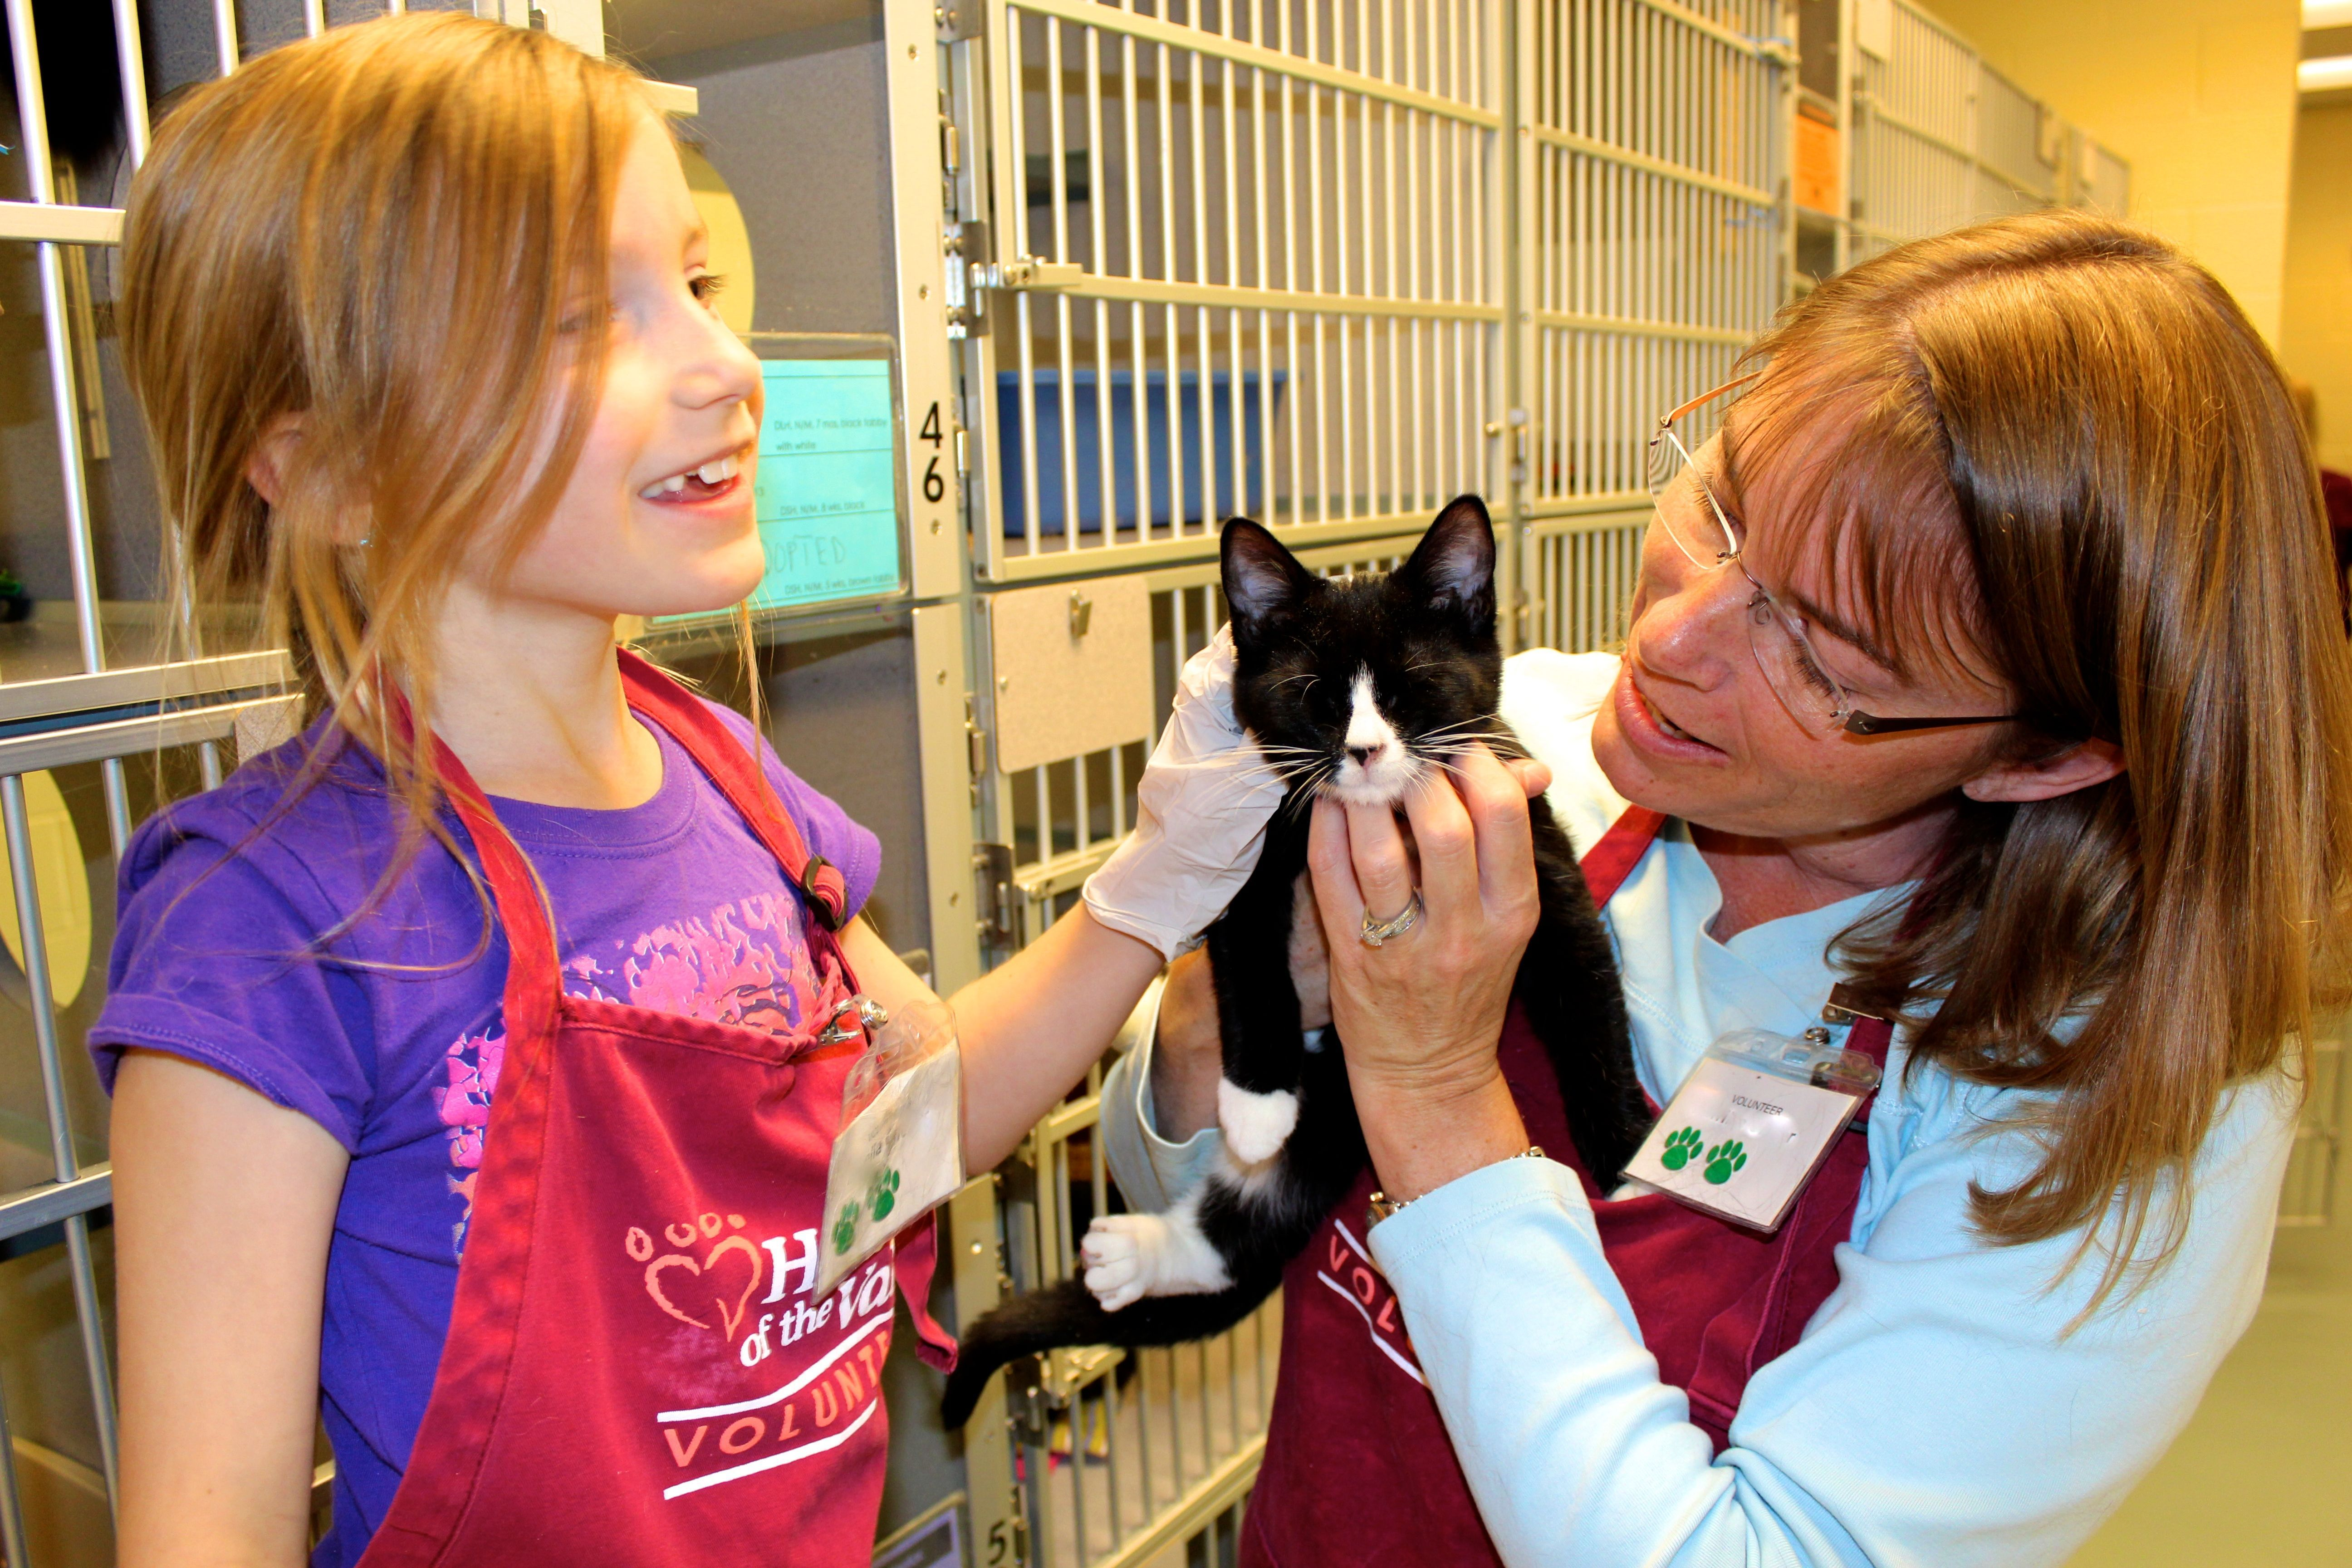 essay on volunteering at animal shelter Shelter volunteers thank you for your interest in volunteering at humane animal rescue our volunteers are the key to the success of our shelters.